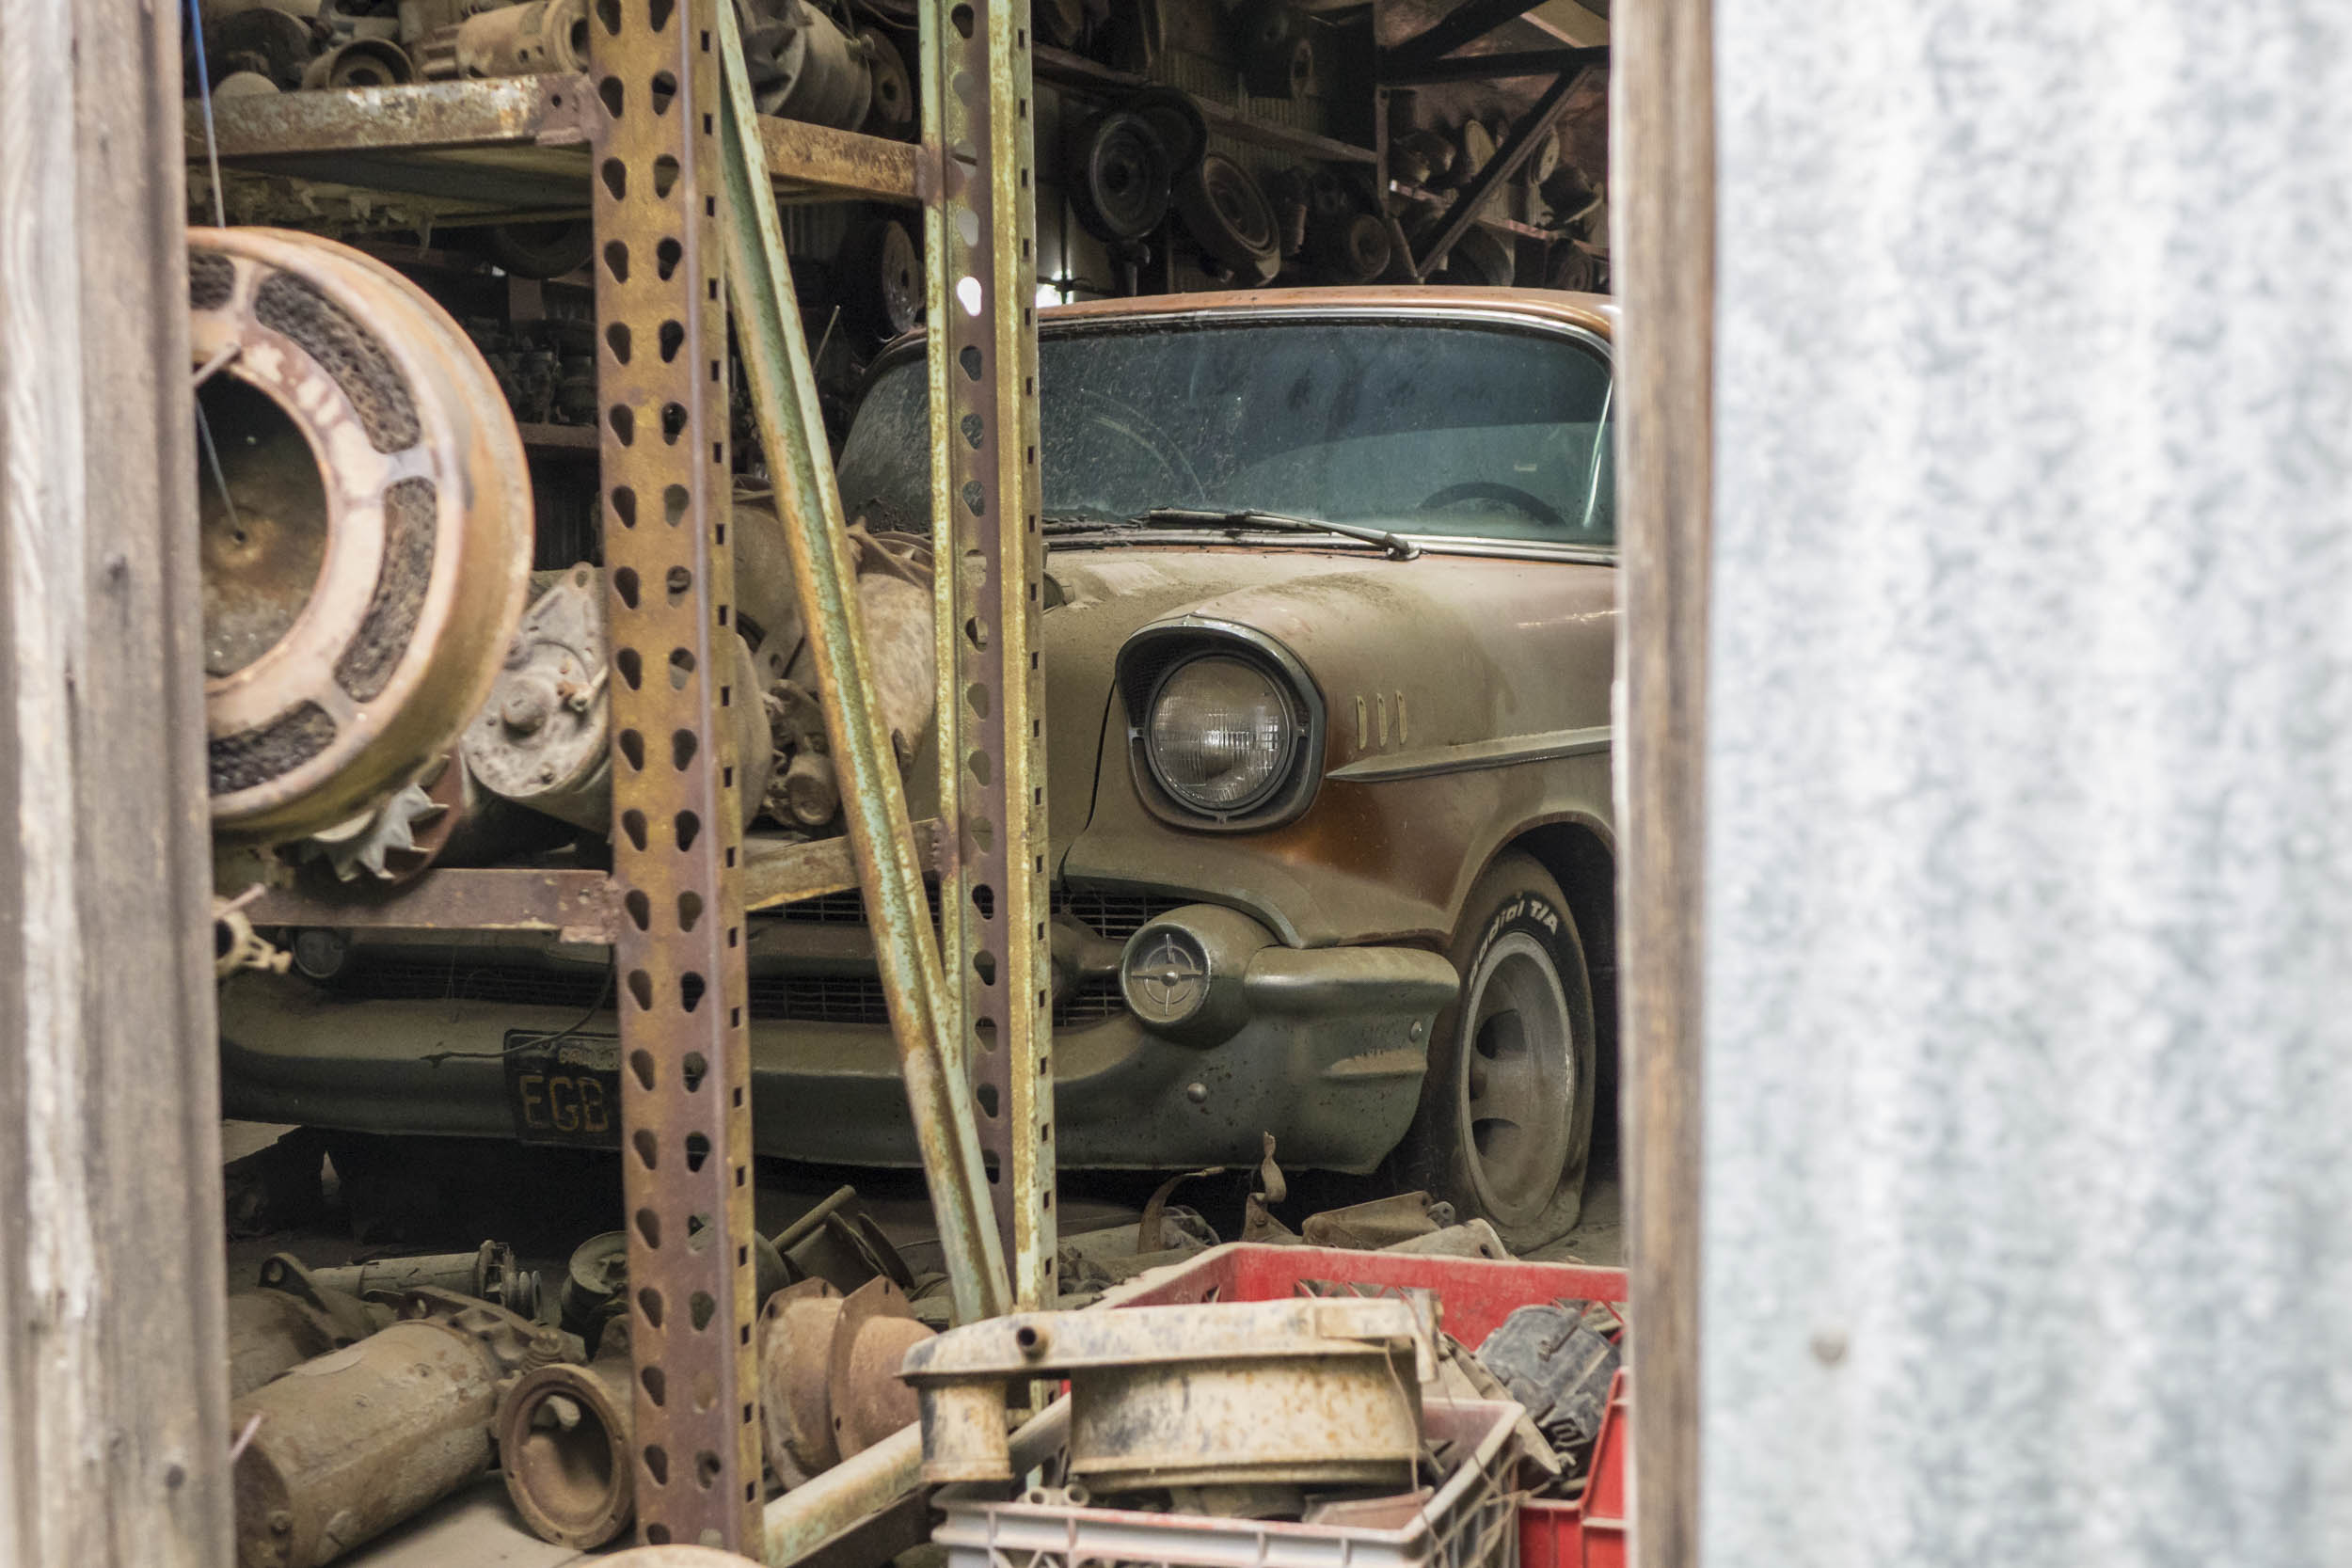 American iron forms the bulk of barn-find discoveries, such as this '57 Chevy Bel Air that has gone to ground in a hangar, one of the few '57s never to be hot-rodded.